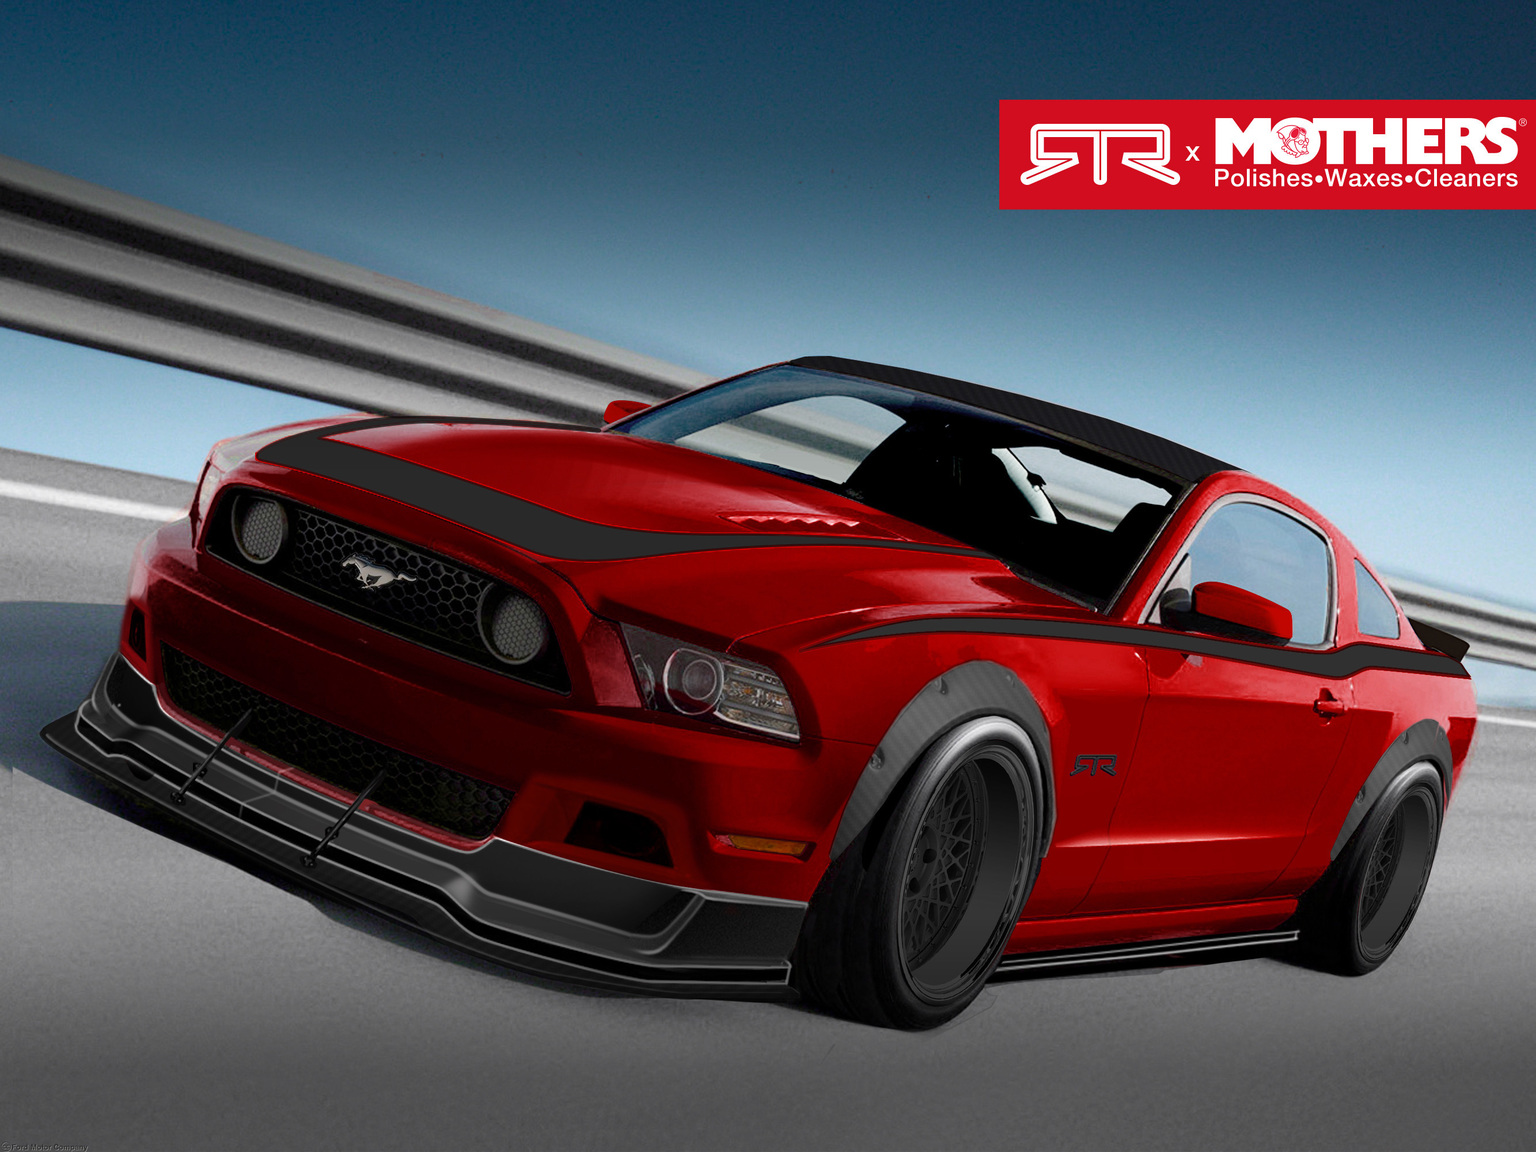 2013 rtr mustang gt coupe 5 0 ford. Black Bedroom Furniture Sets. Home Design Ideas